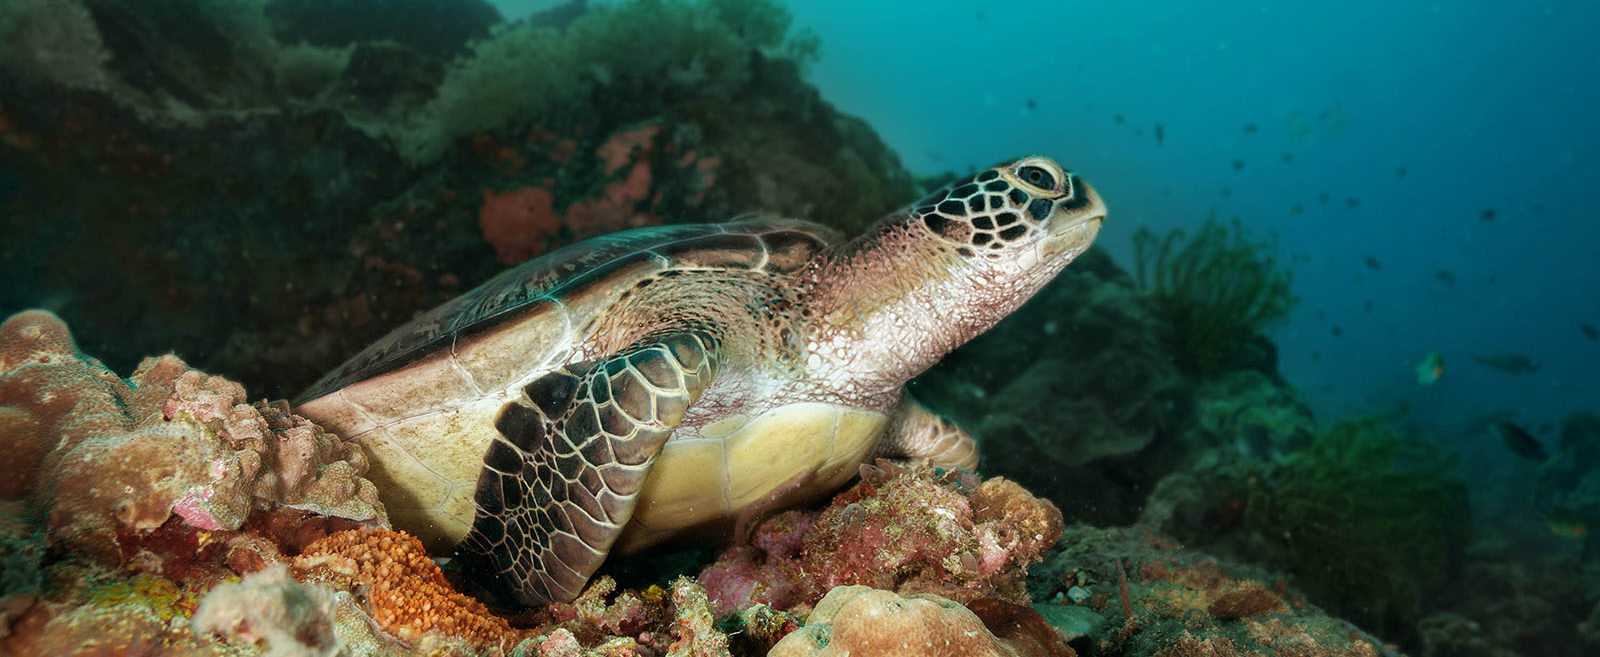 Philippines, Moalboal, Turtle